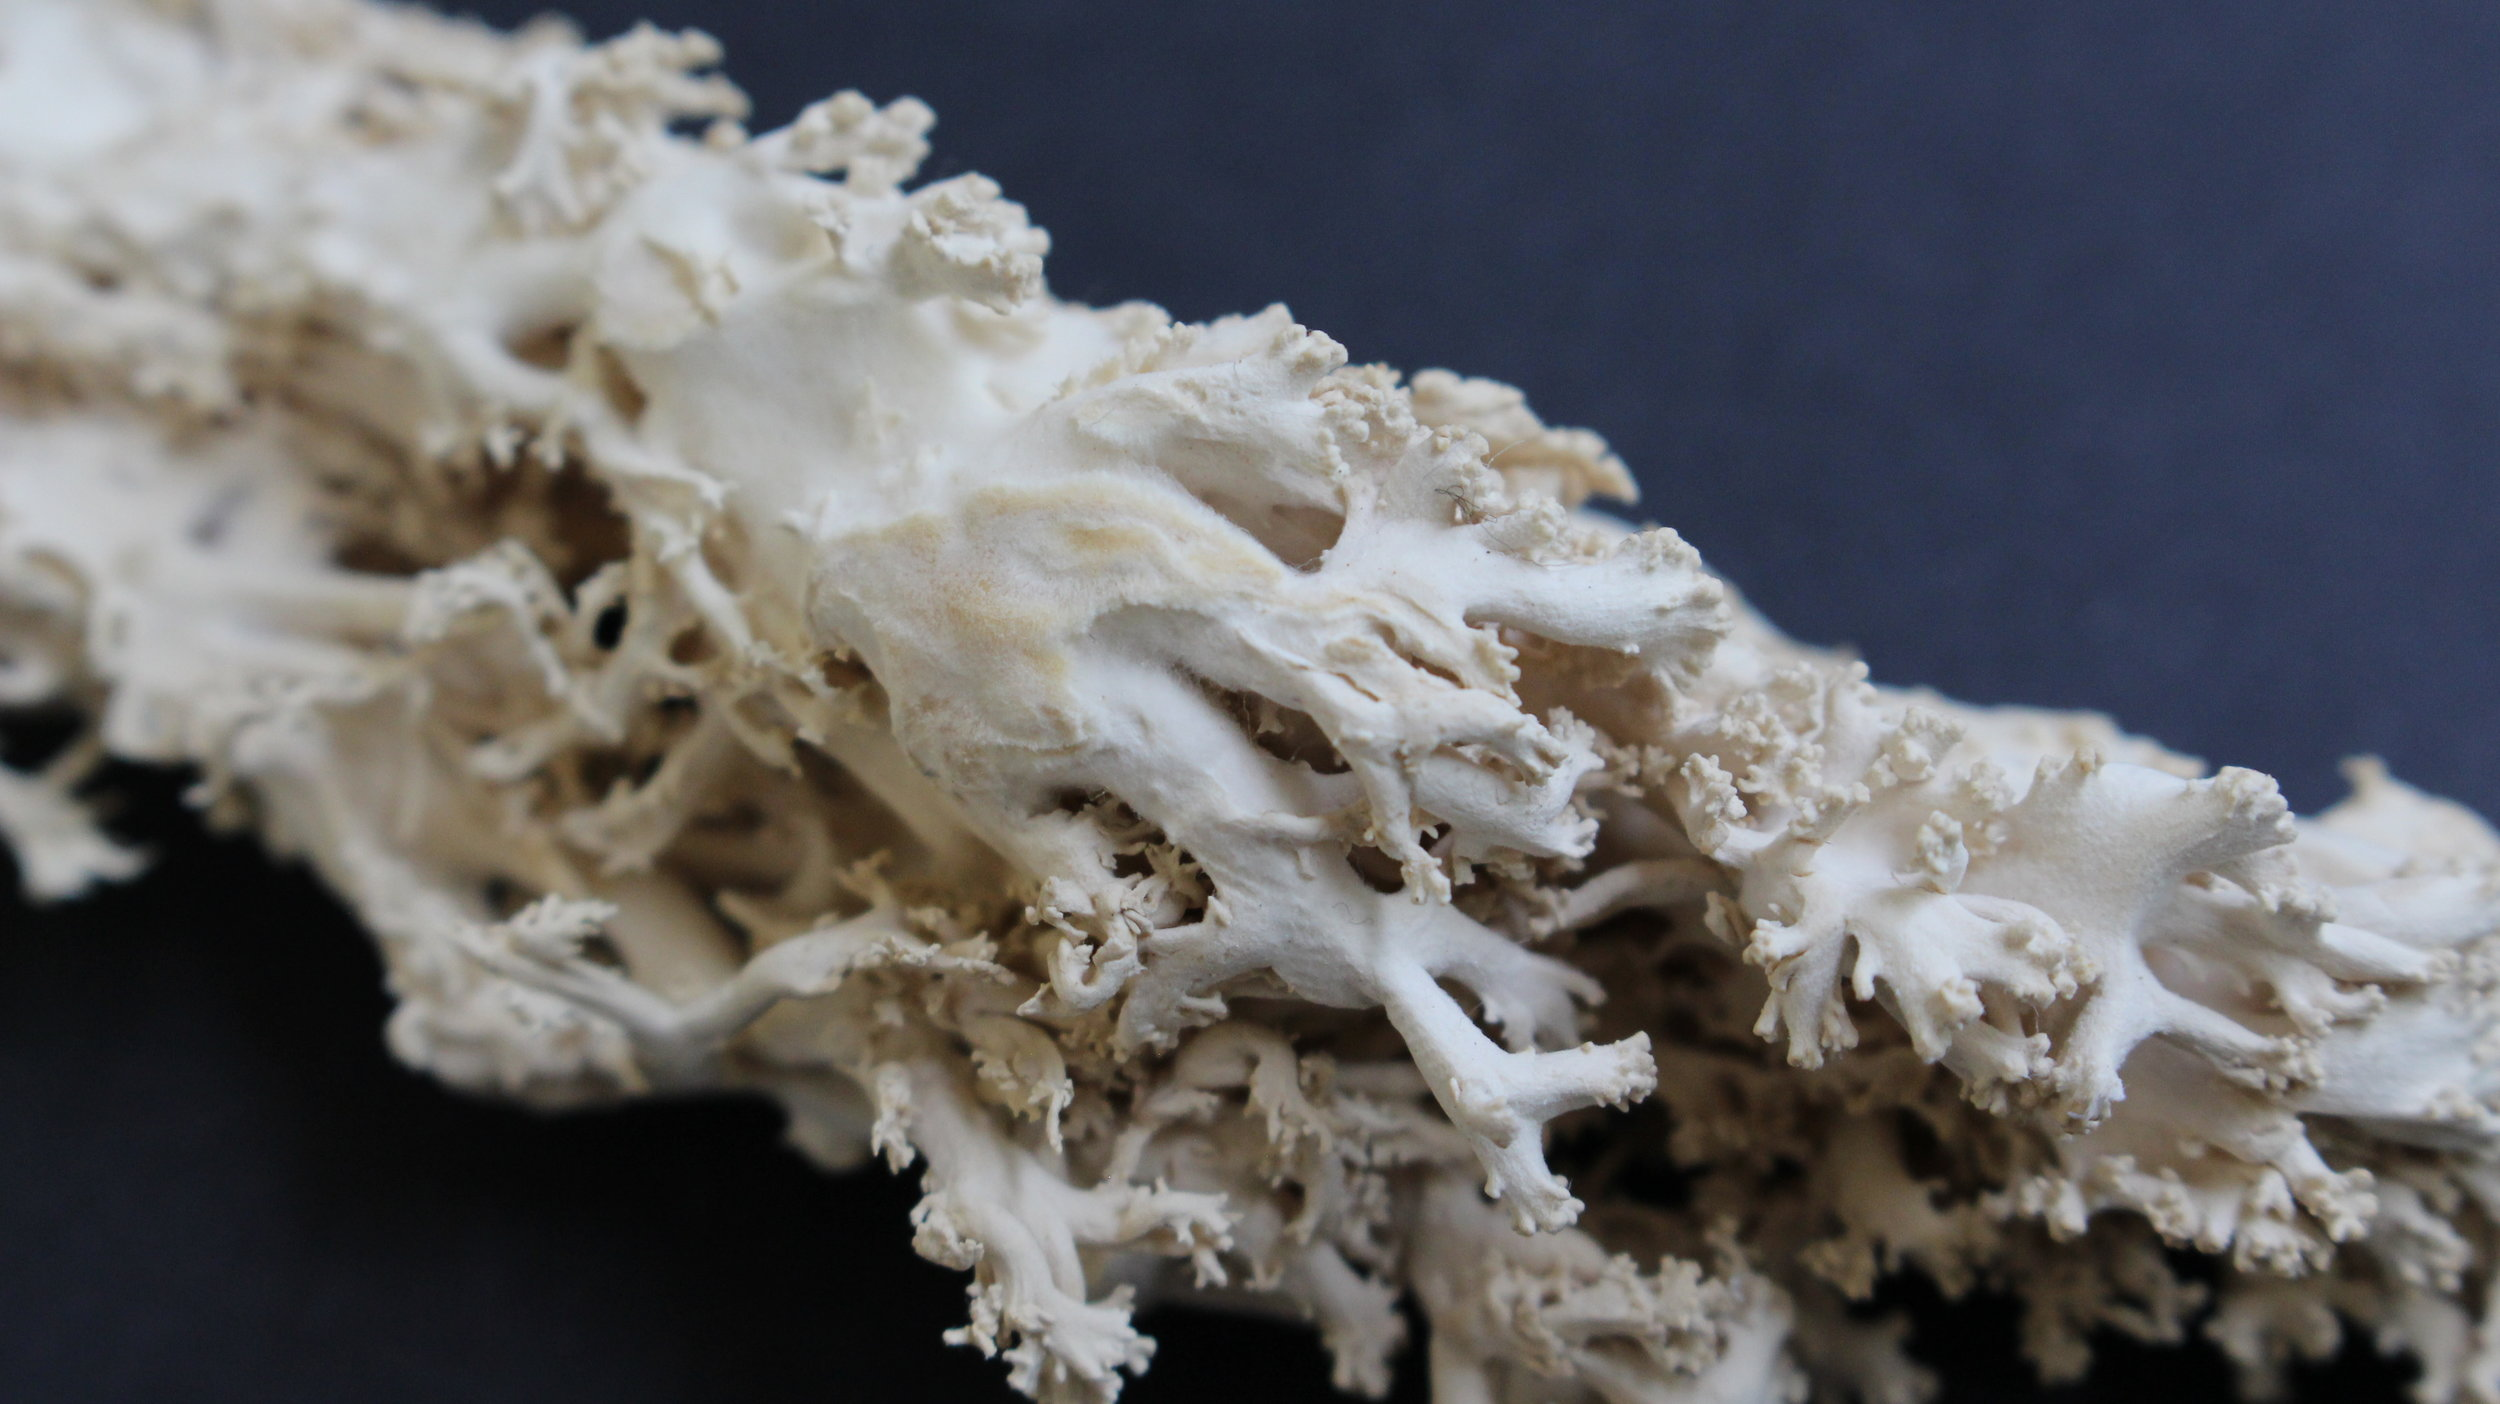 01_asselin_mycelium_growth_1.jpg